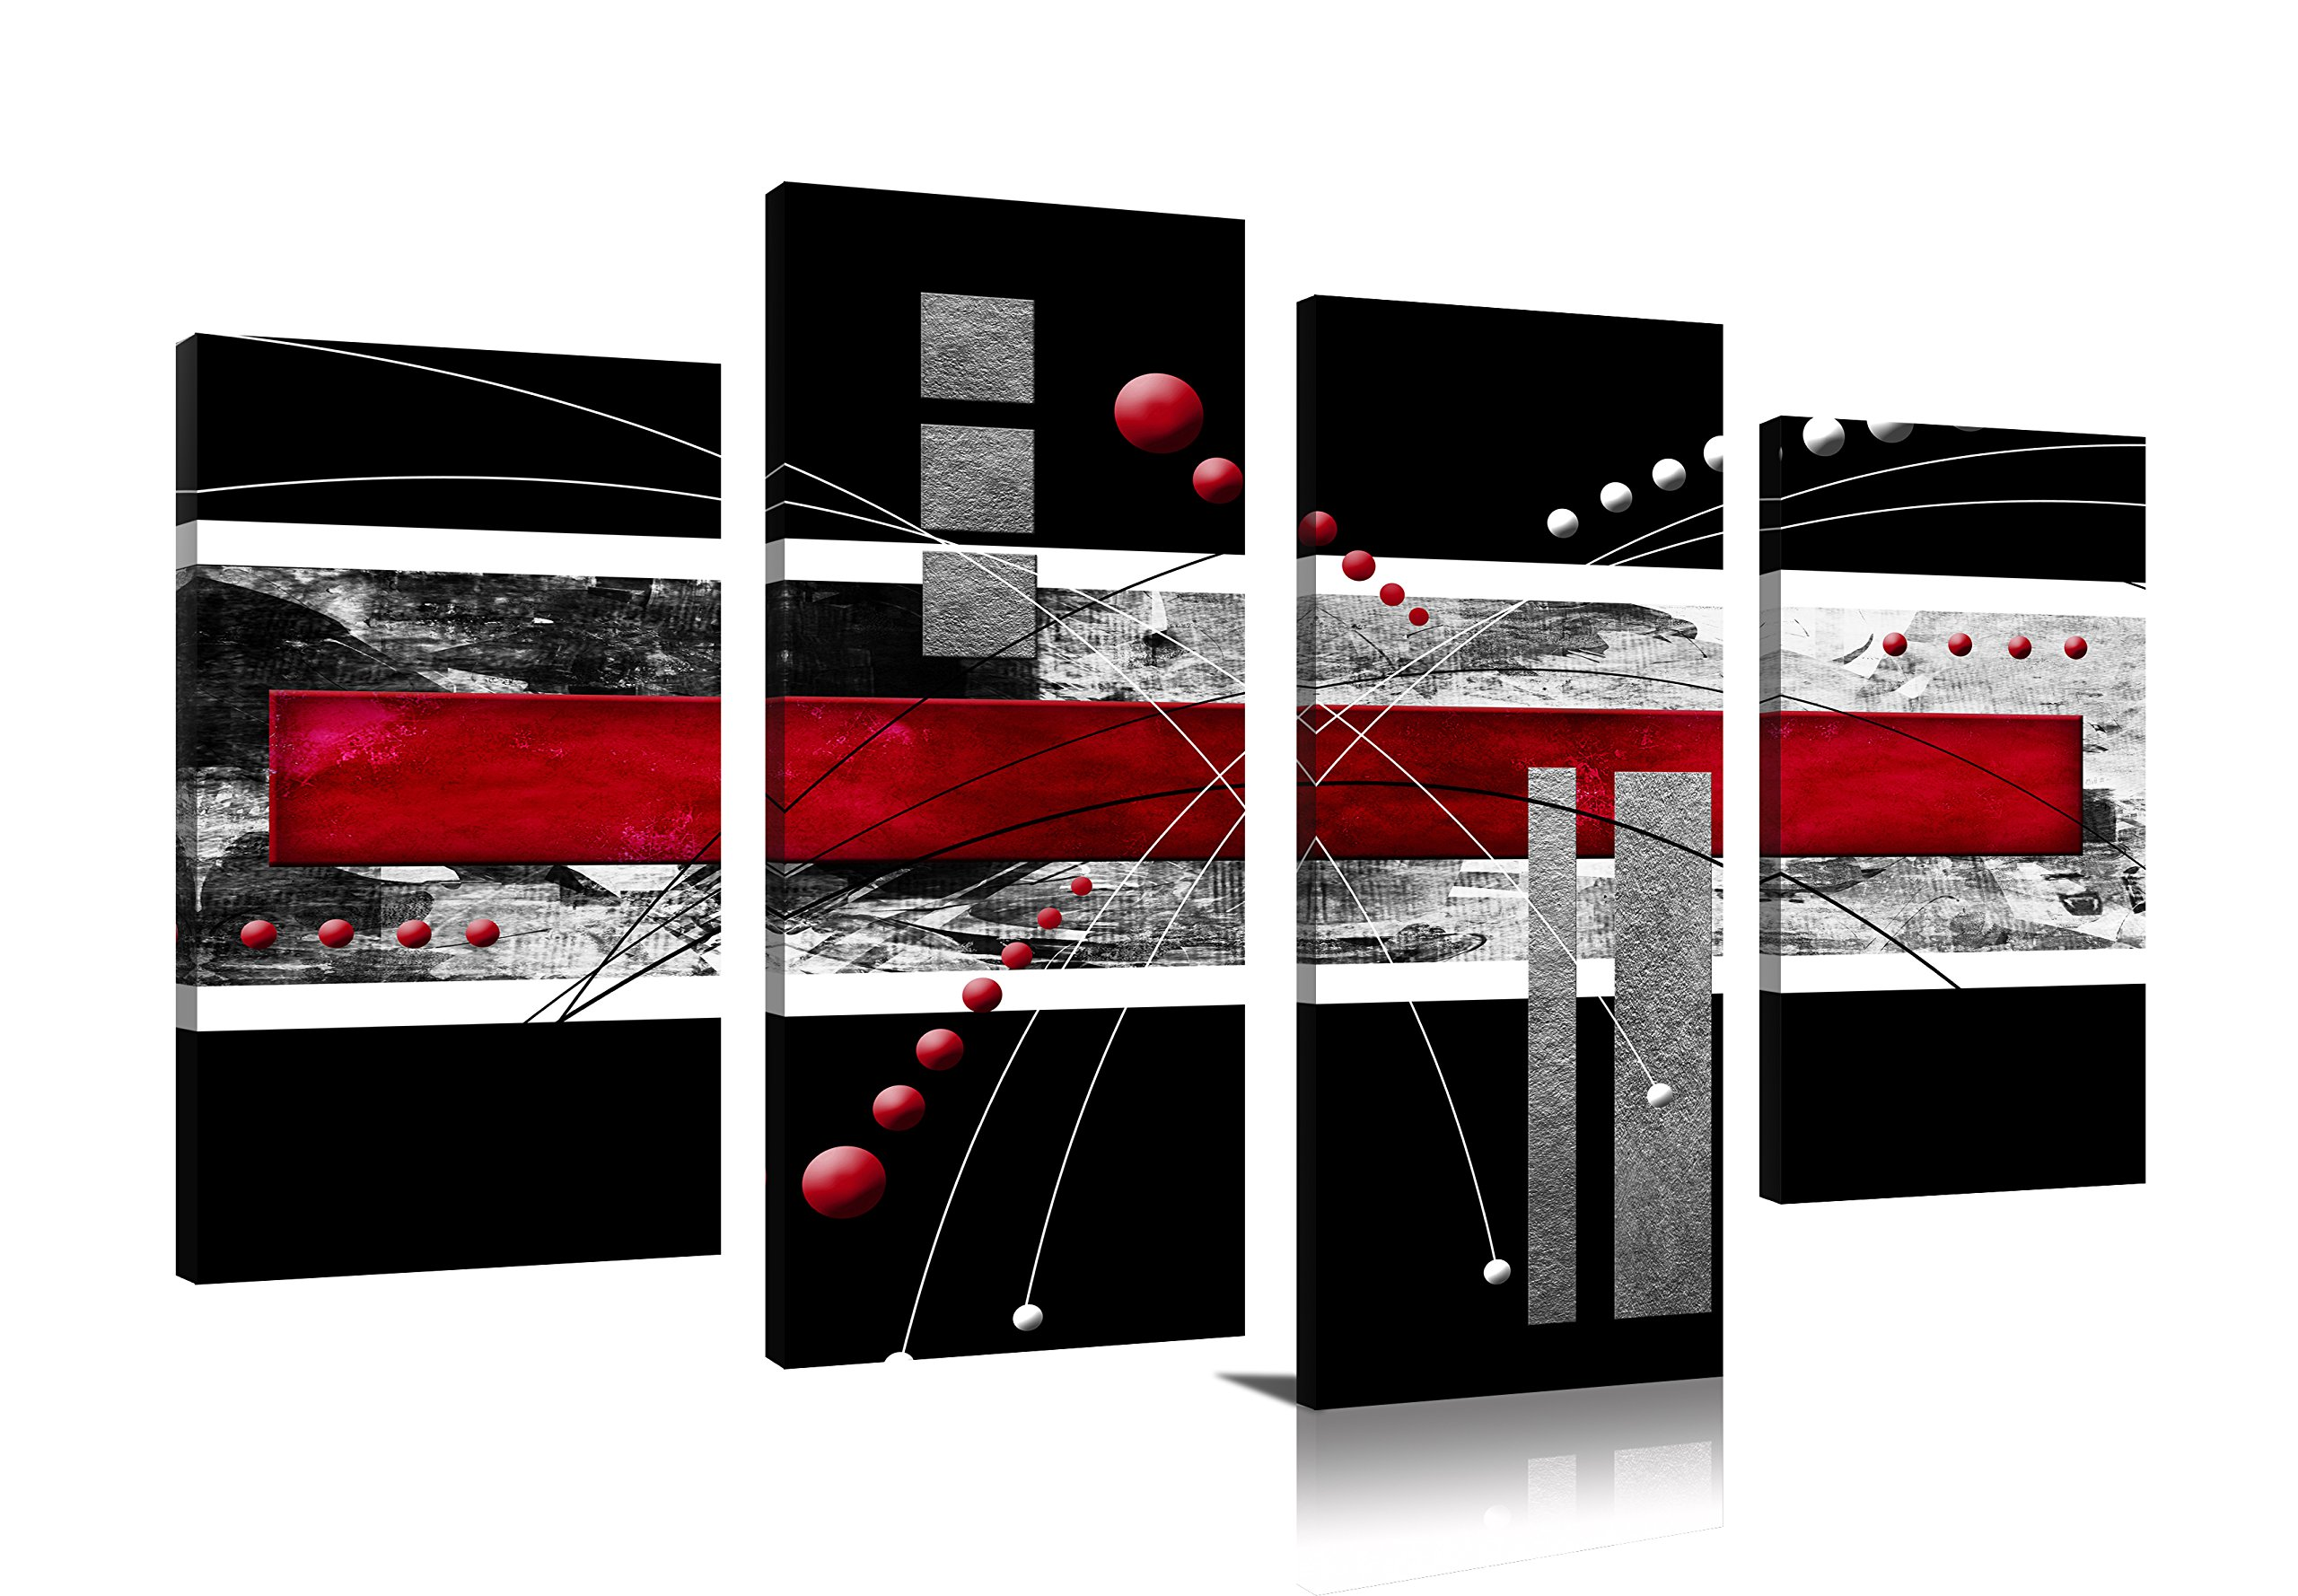 Black Red Canvas Material 4 Panels Abstract Modern Artwork for Wall Decoration Ready to Hang Living Room Bedroom by YPY